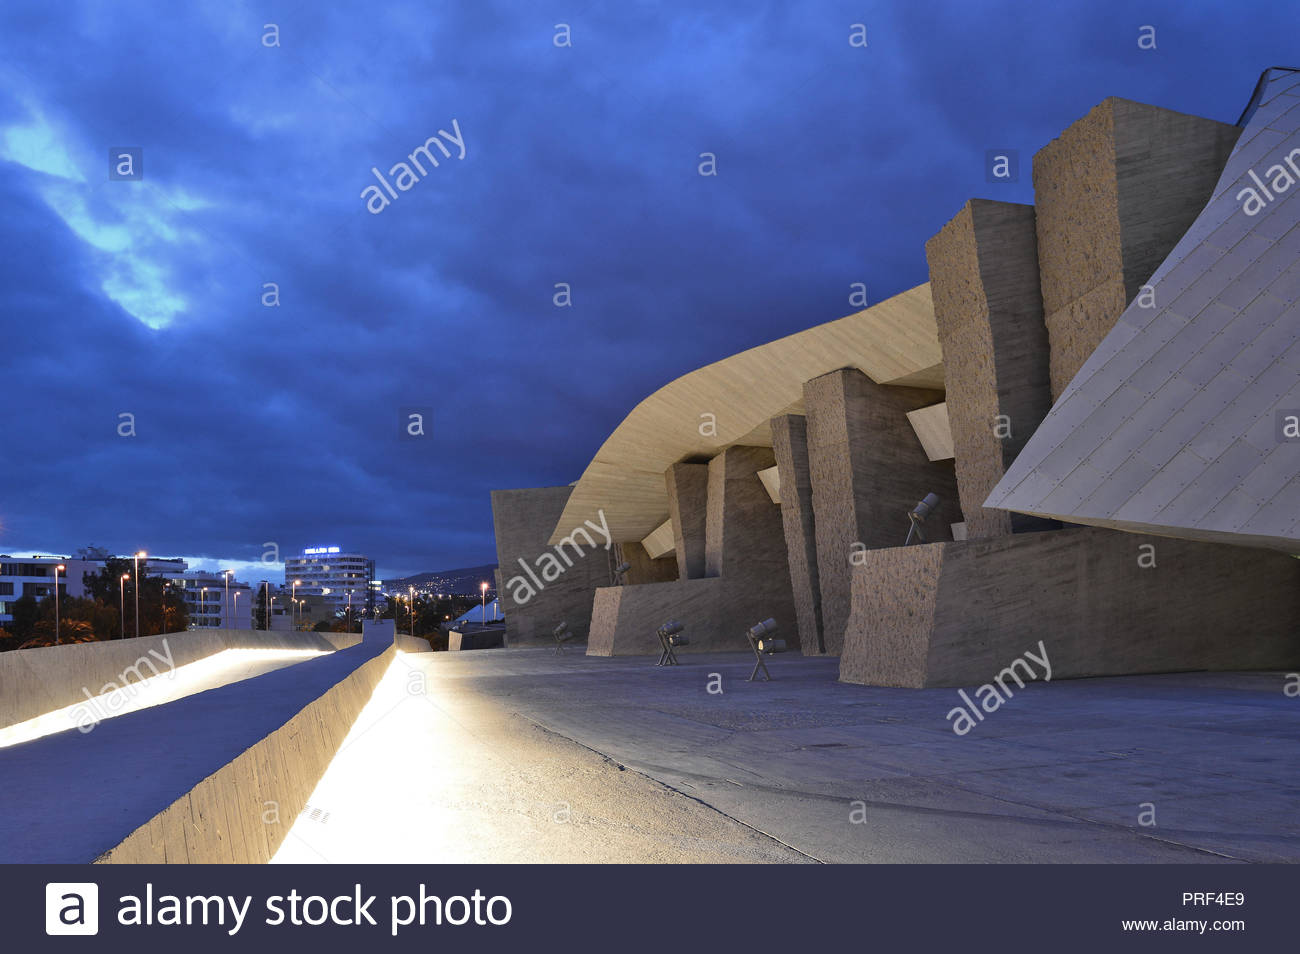 Magma Arts And Congress Center, modern architecture illuminated at dusk. Costa Adeje Tenerife Canary Islands Spain. Designed by Fernando Menis. - Stock Image